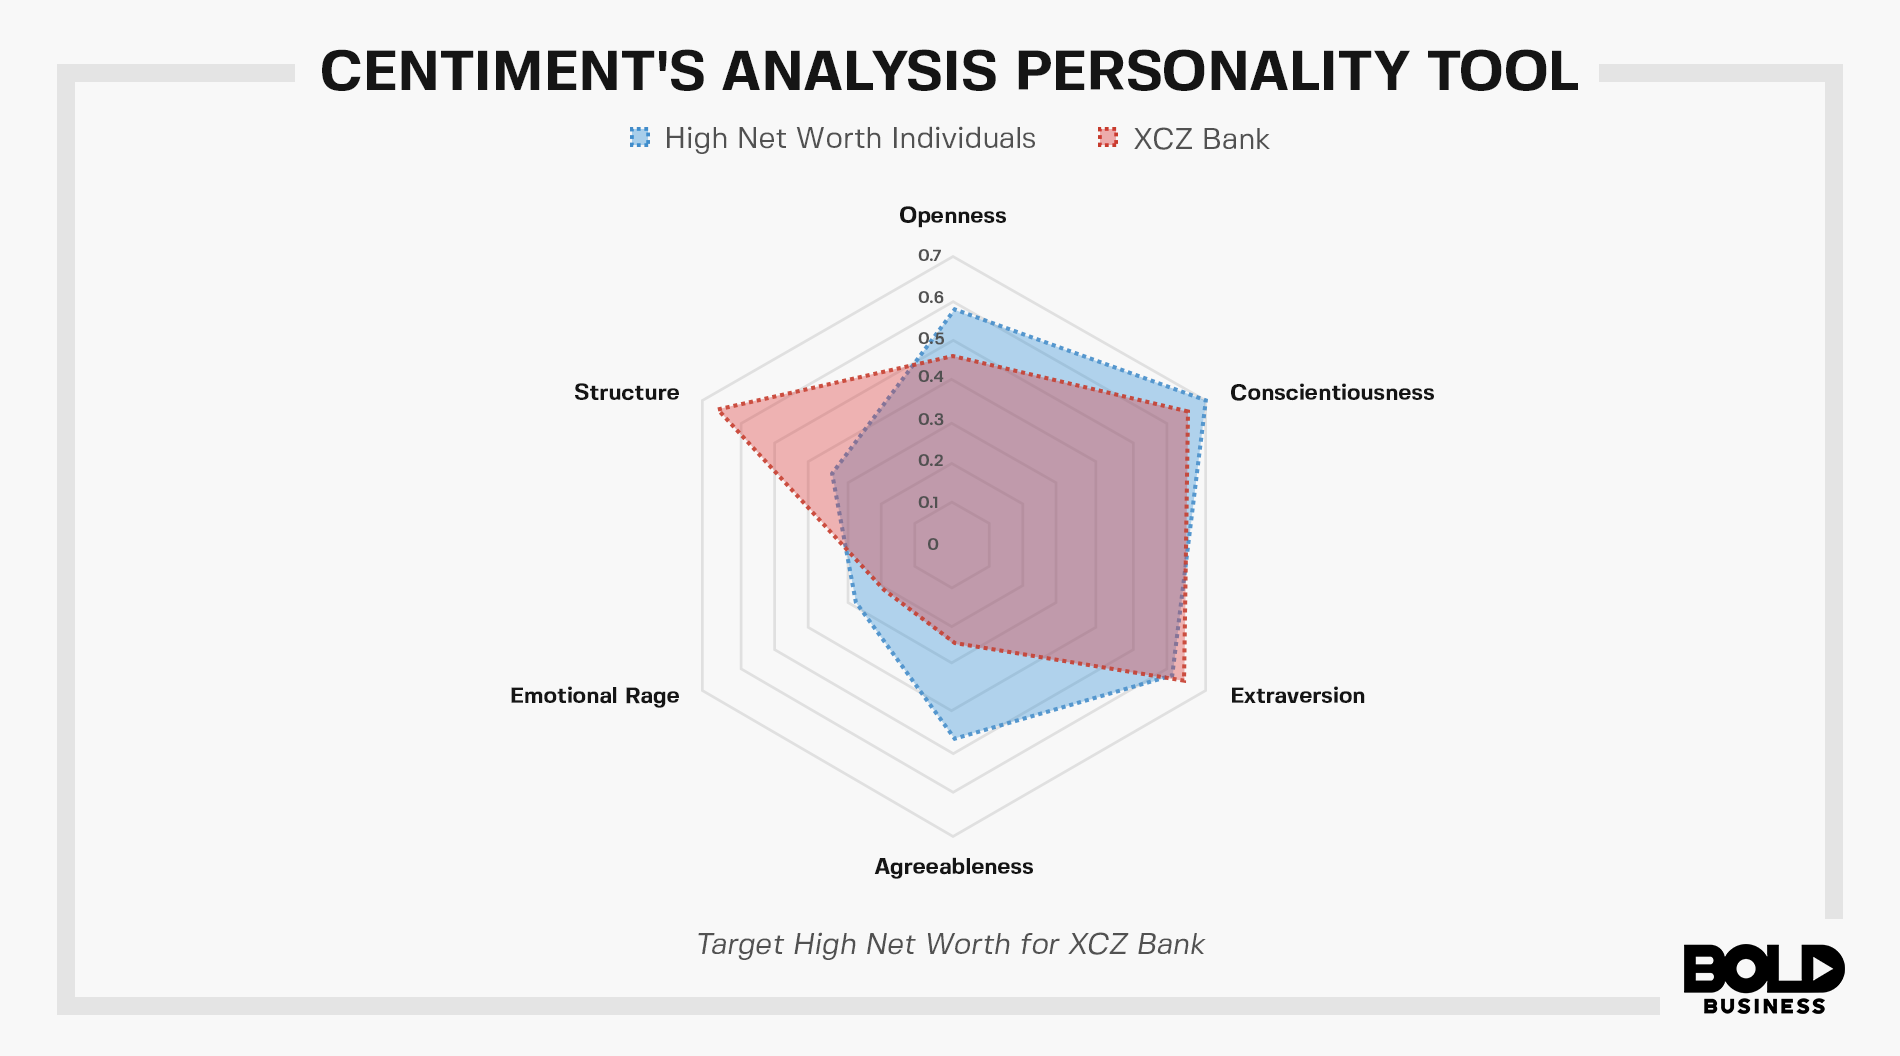 Centiment's analysis personality tool